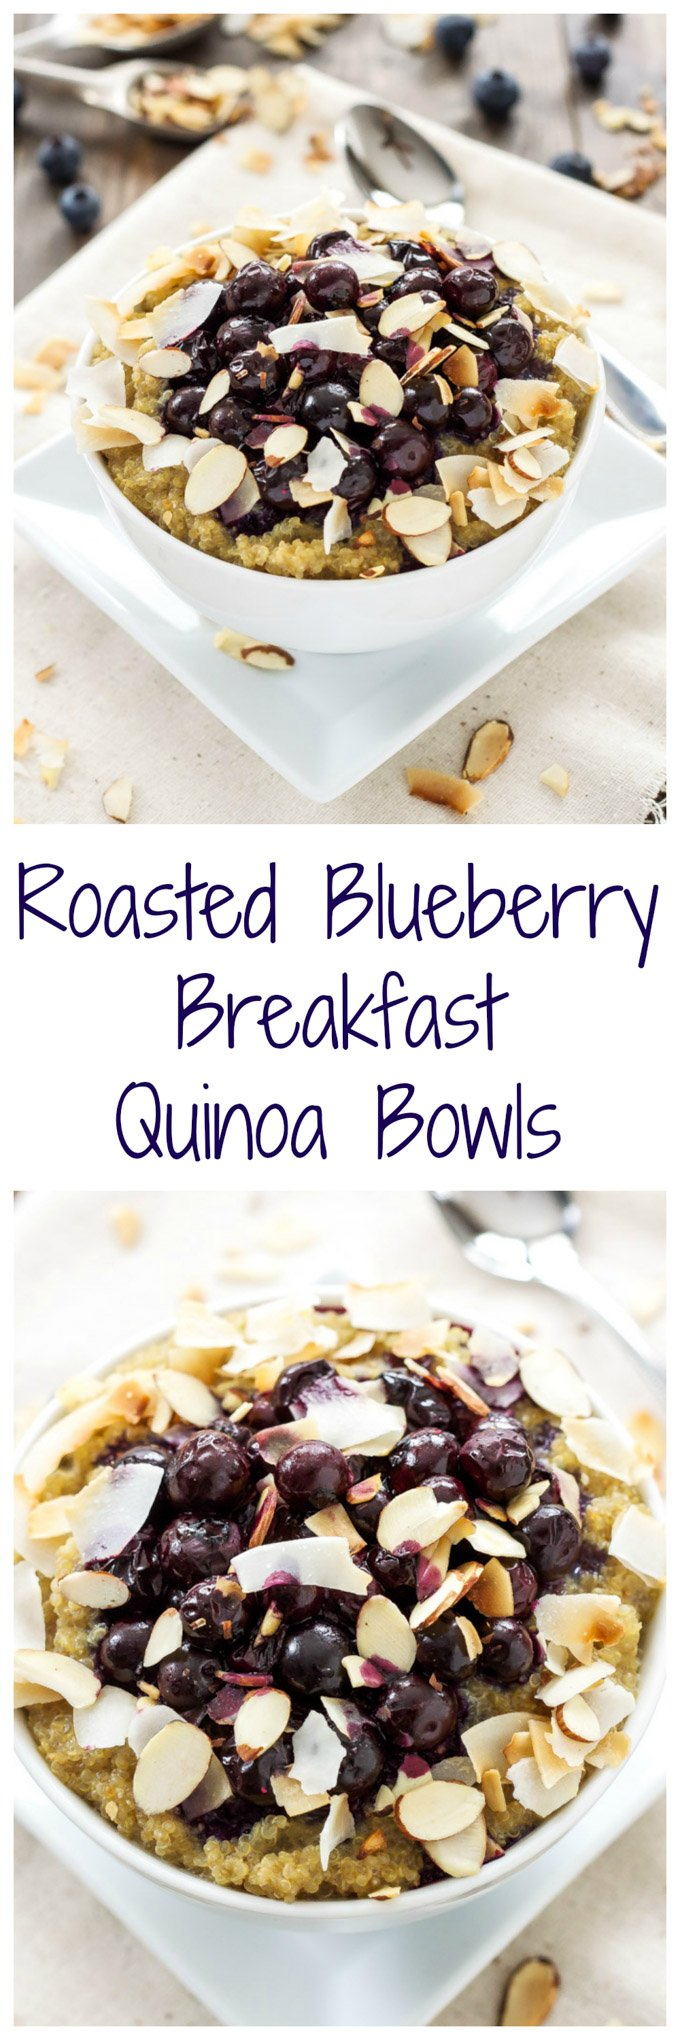 Roasted Blueberry Quinoa Breakfast Bowls | This delicious quinoa bowl uses vanilla soymilk making it a great dairy-free and vegan breakfast! @lovemysilk #ad